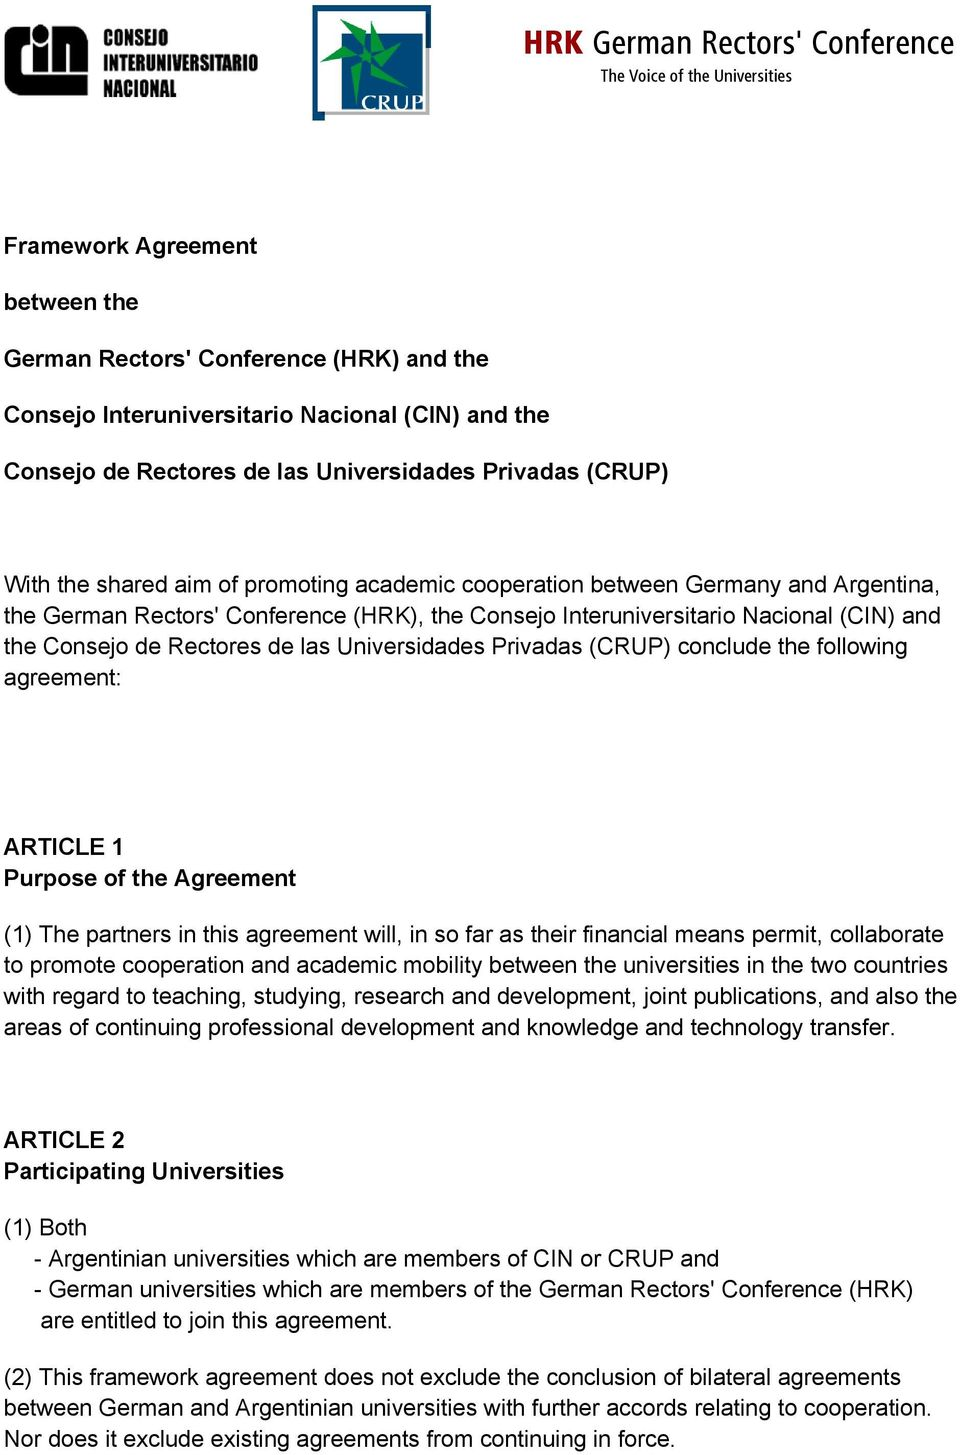 Nacional (CIN) and the Consejo de Rectores de las Universidades Privadas (CRUP) conclude the following agreement: ARTICLE 1 Purpose of the Agreement (1) The partners in this agreement will, in so far